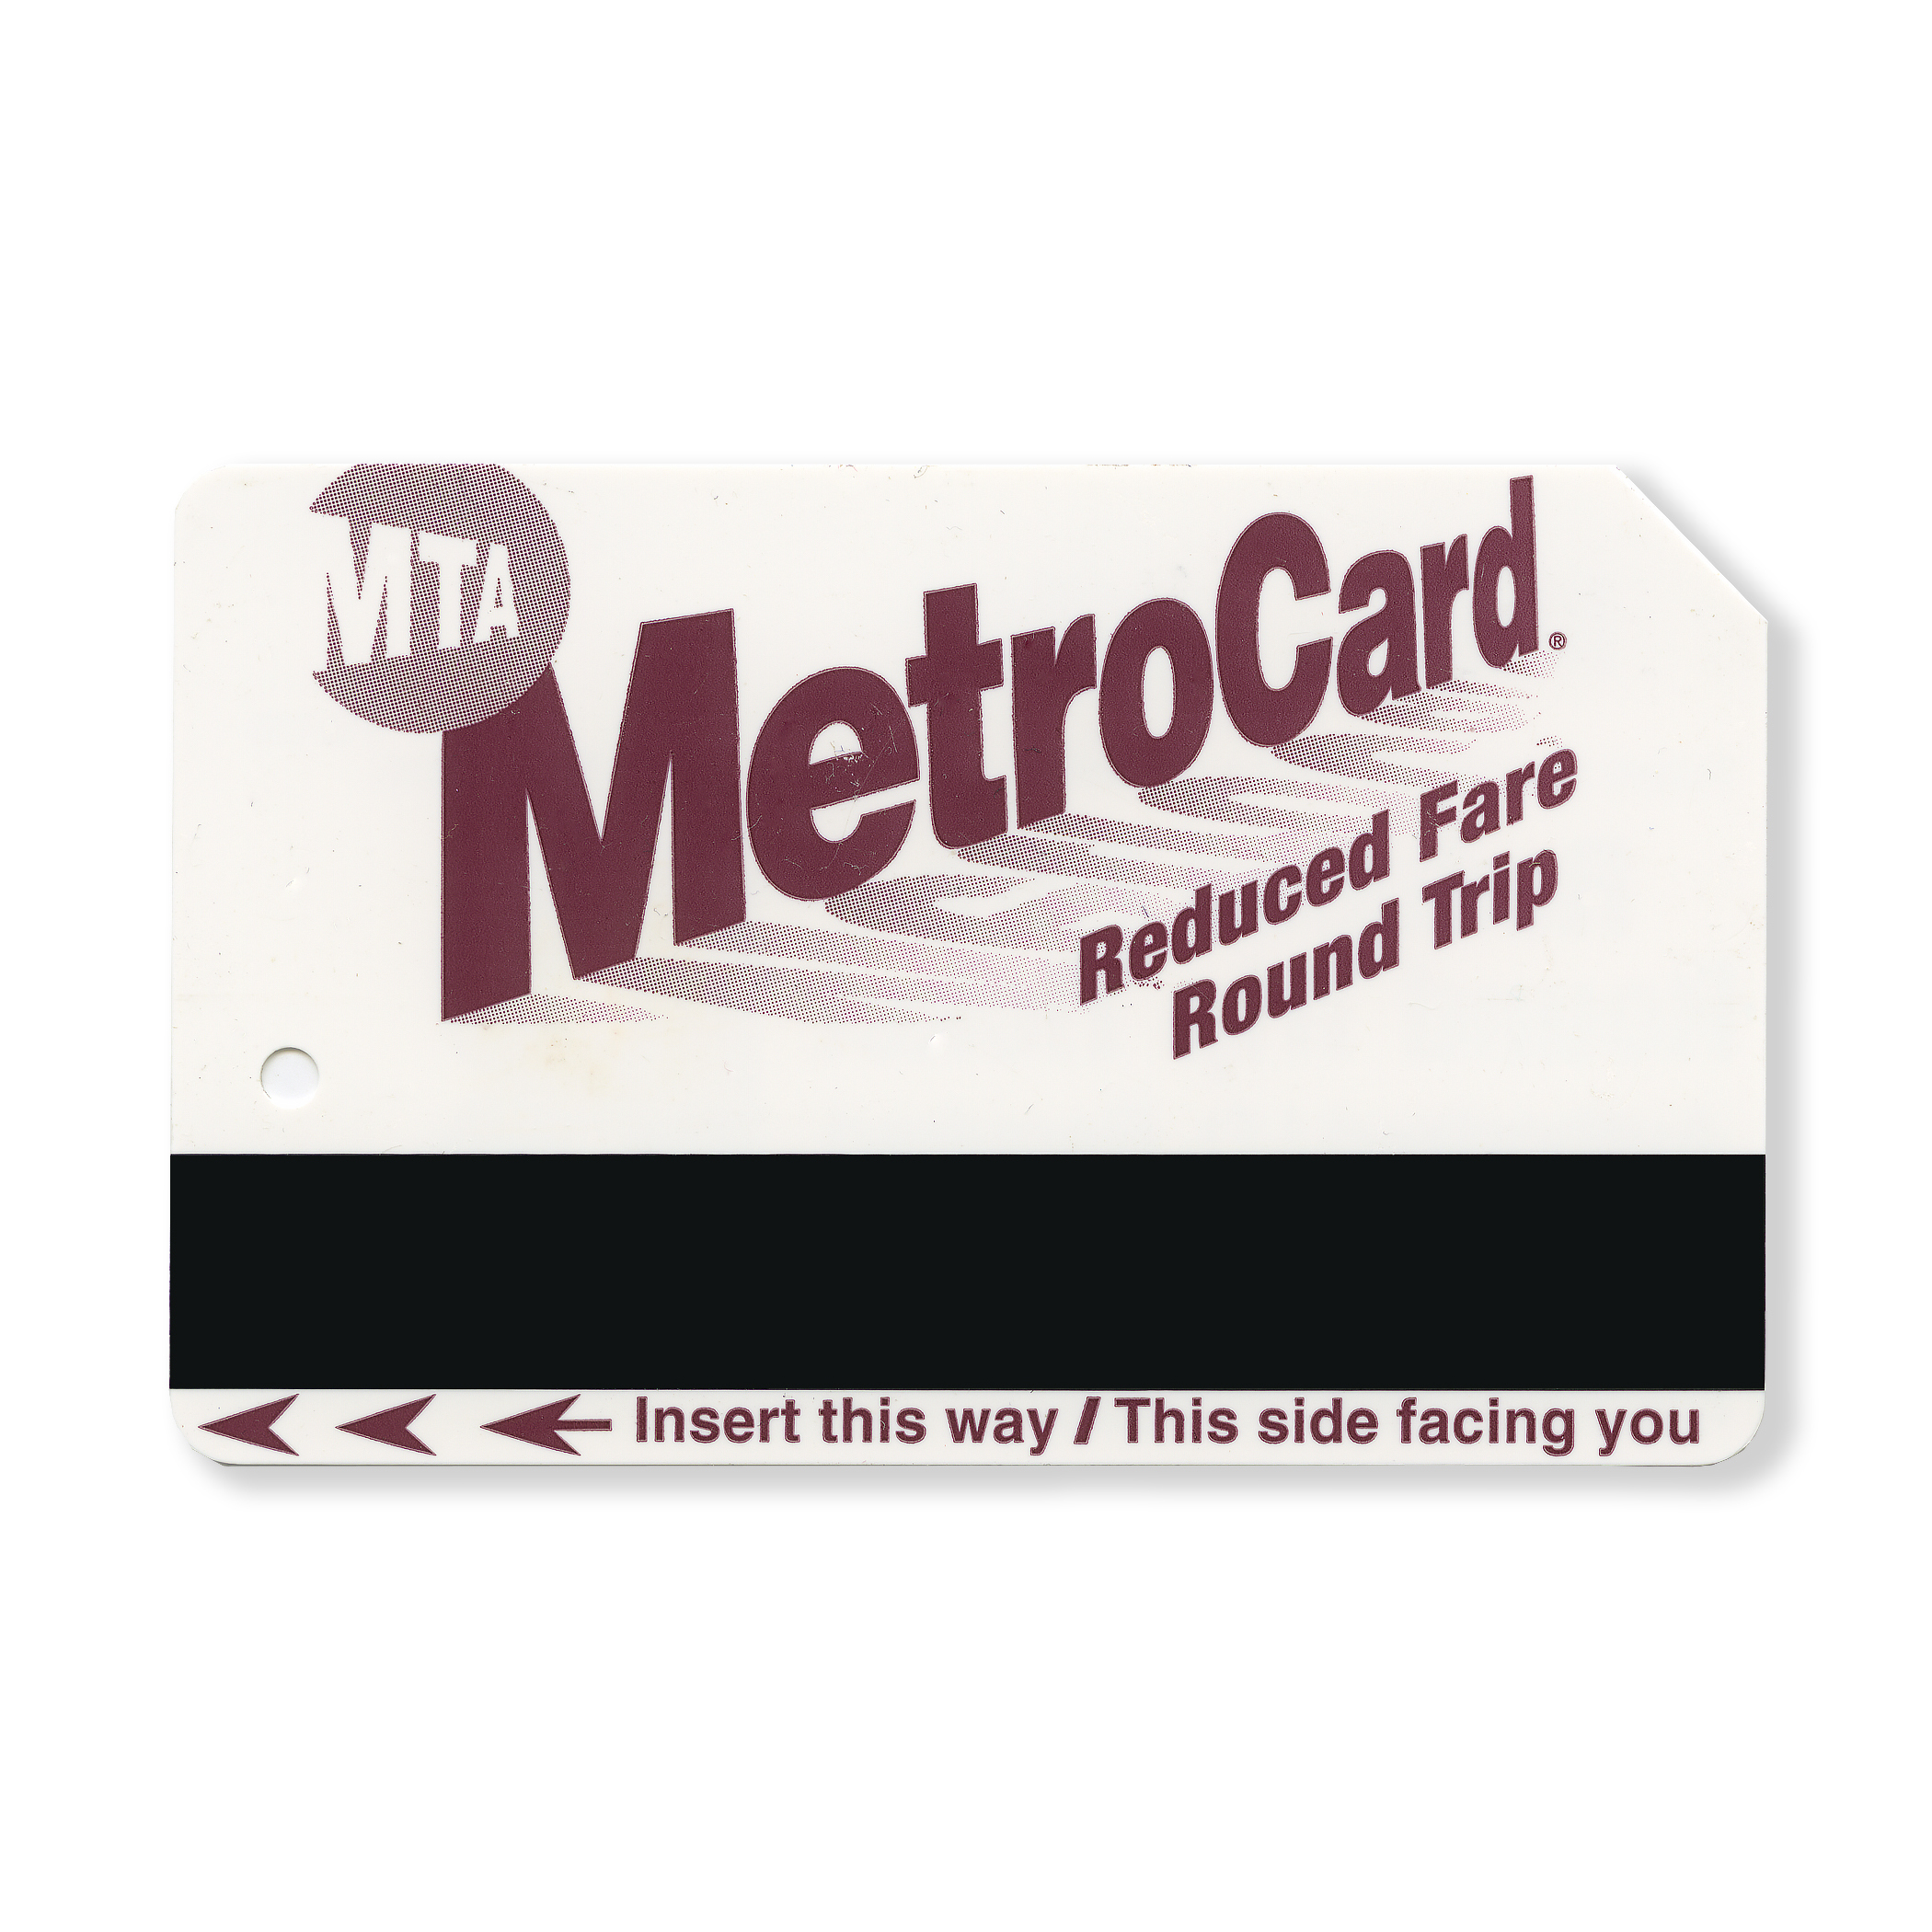 the_nycta_project_2013_reduced_fare_roundtrip_metrocard.jpg